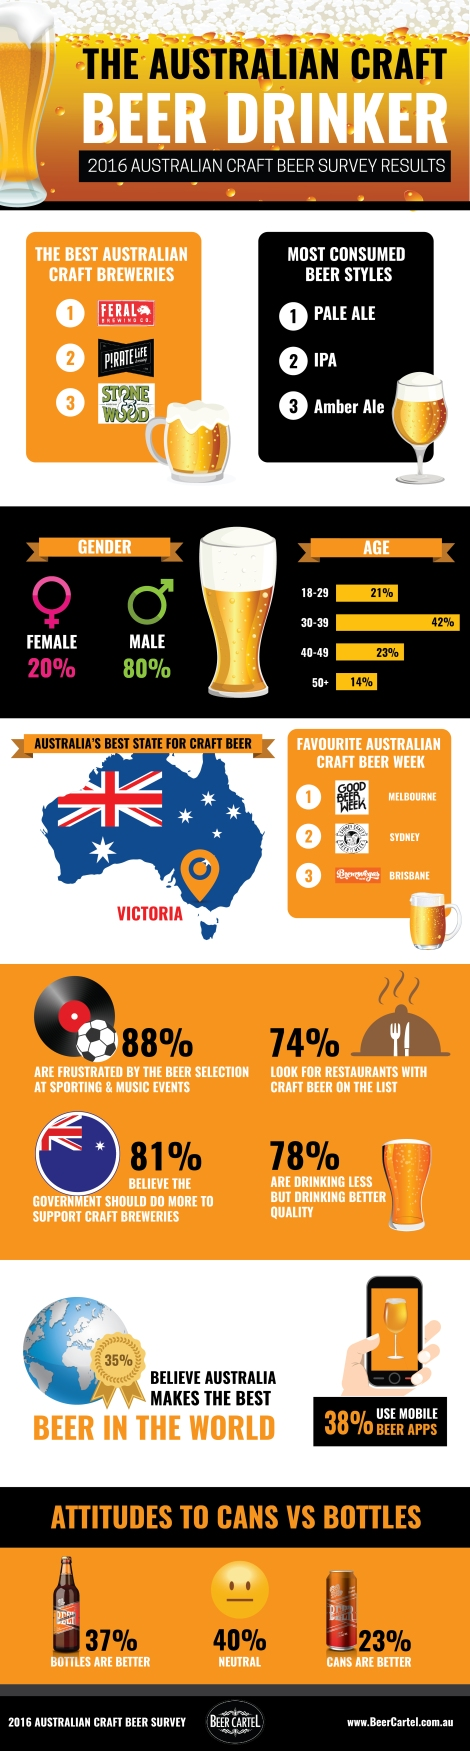 2016-australian-craft-beer-survey-infographic